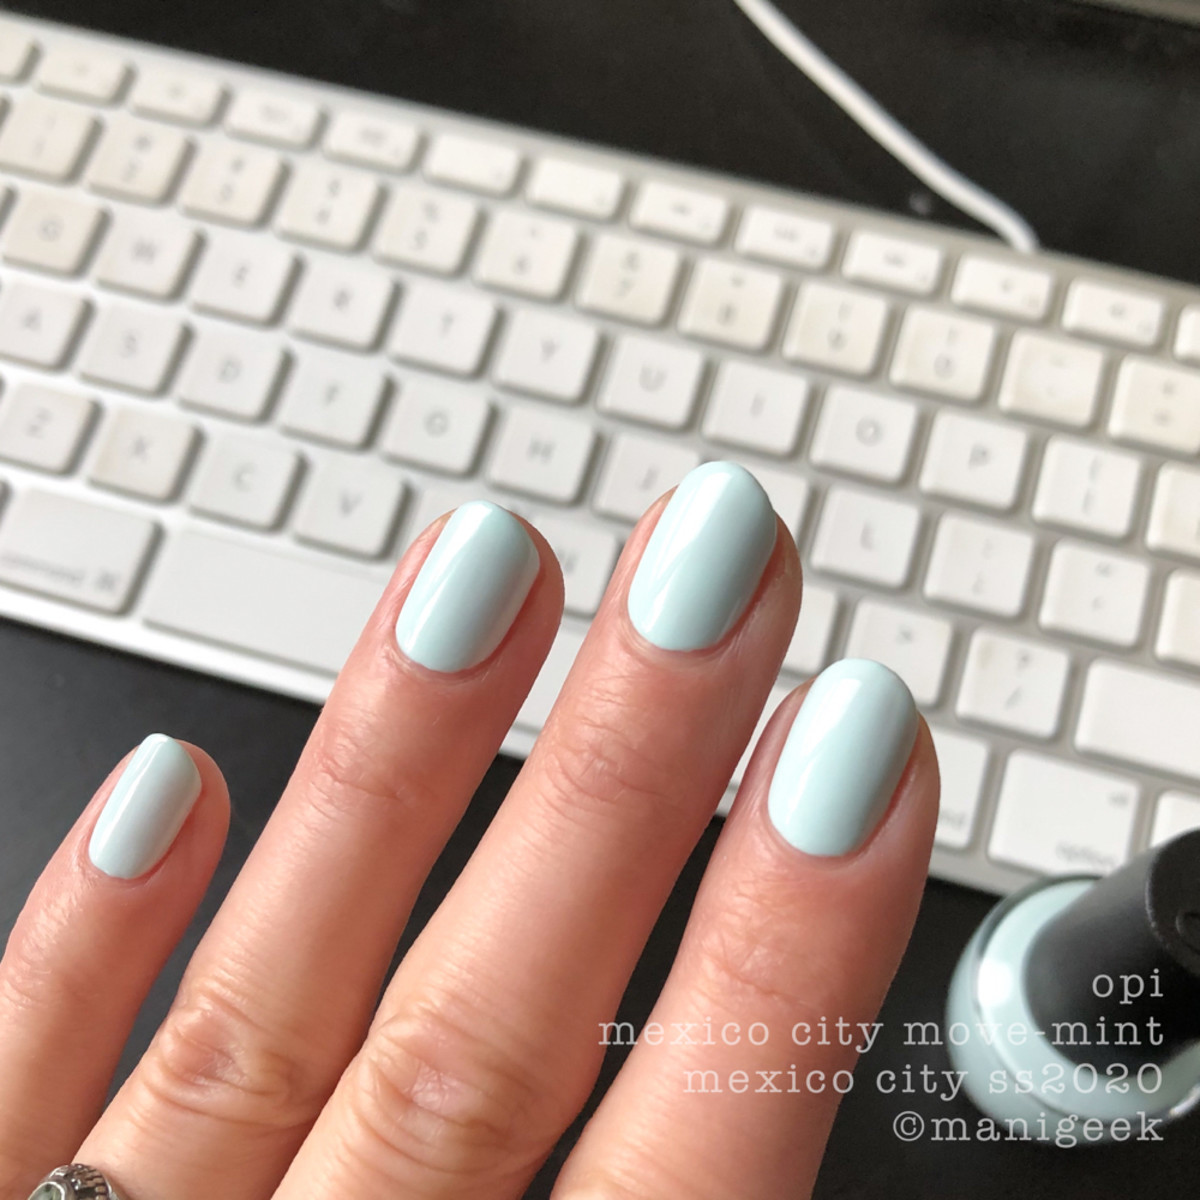 OPI Mexico City Move-Mint - OPI Mexico City Swatches Review 2020